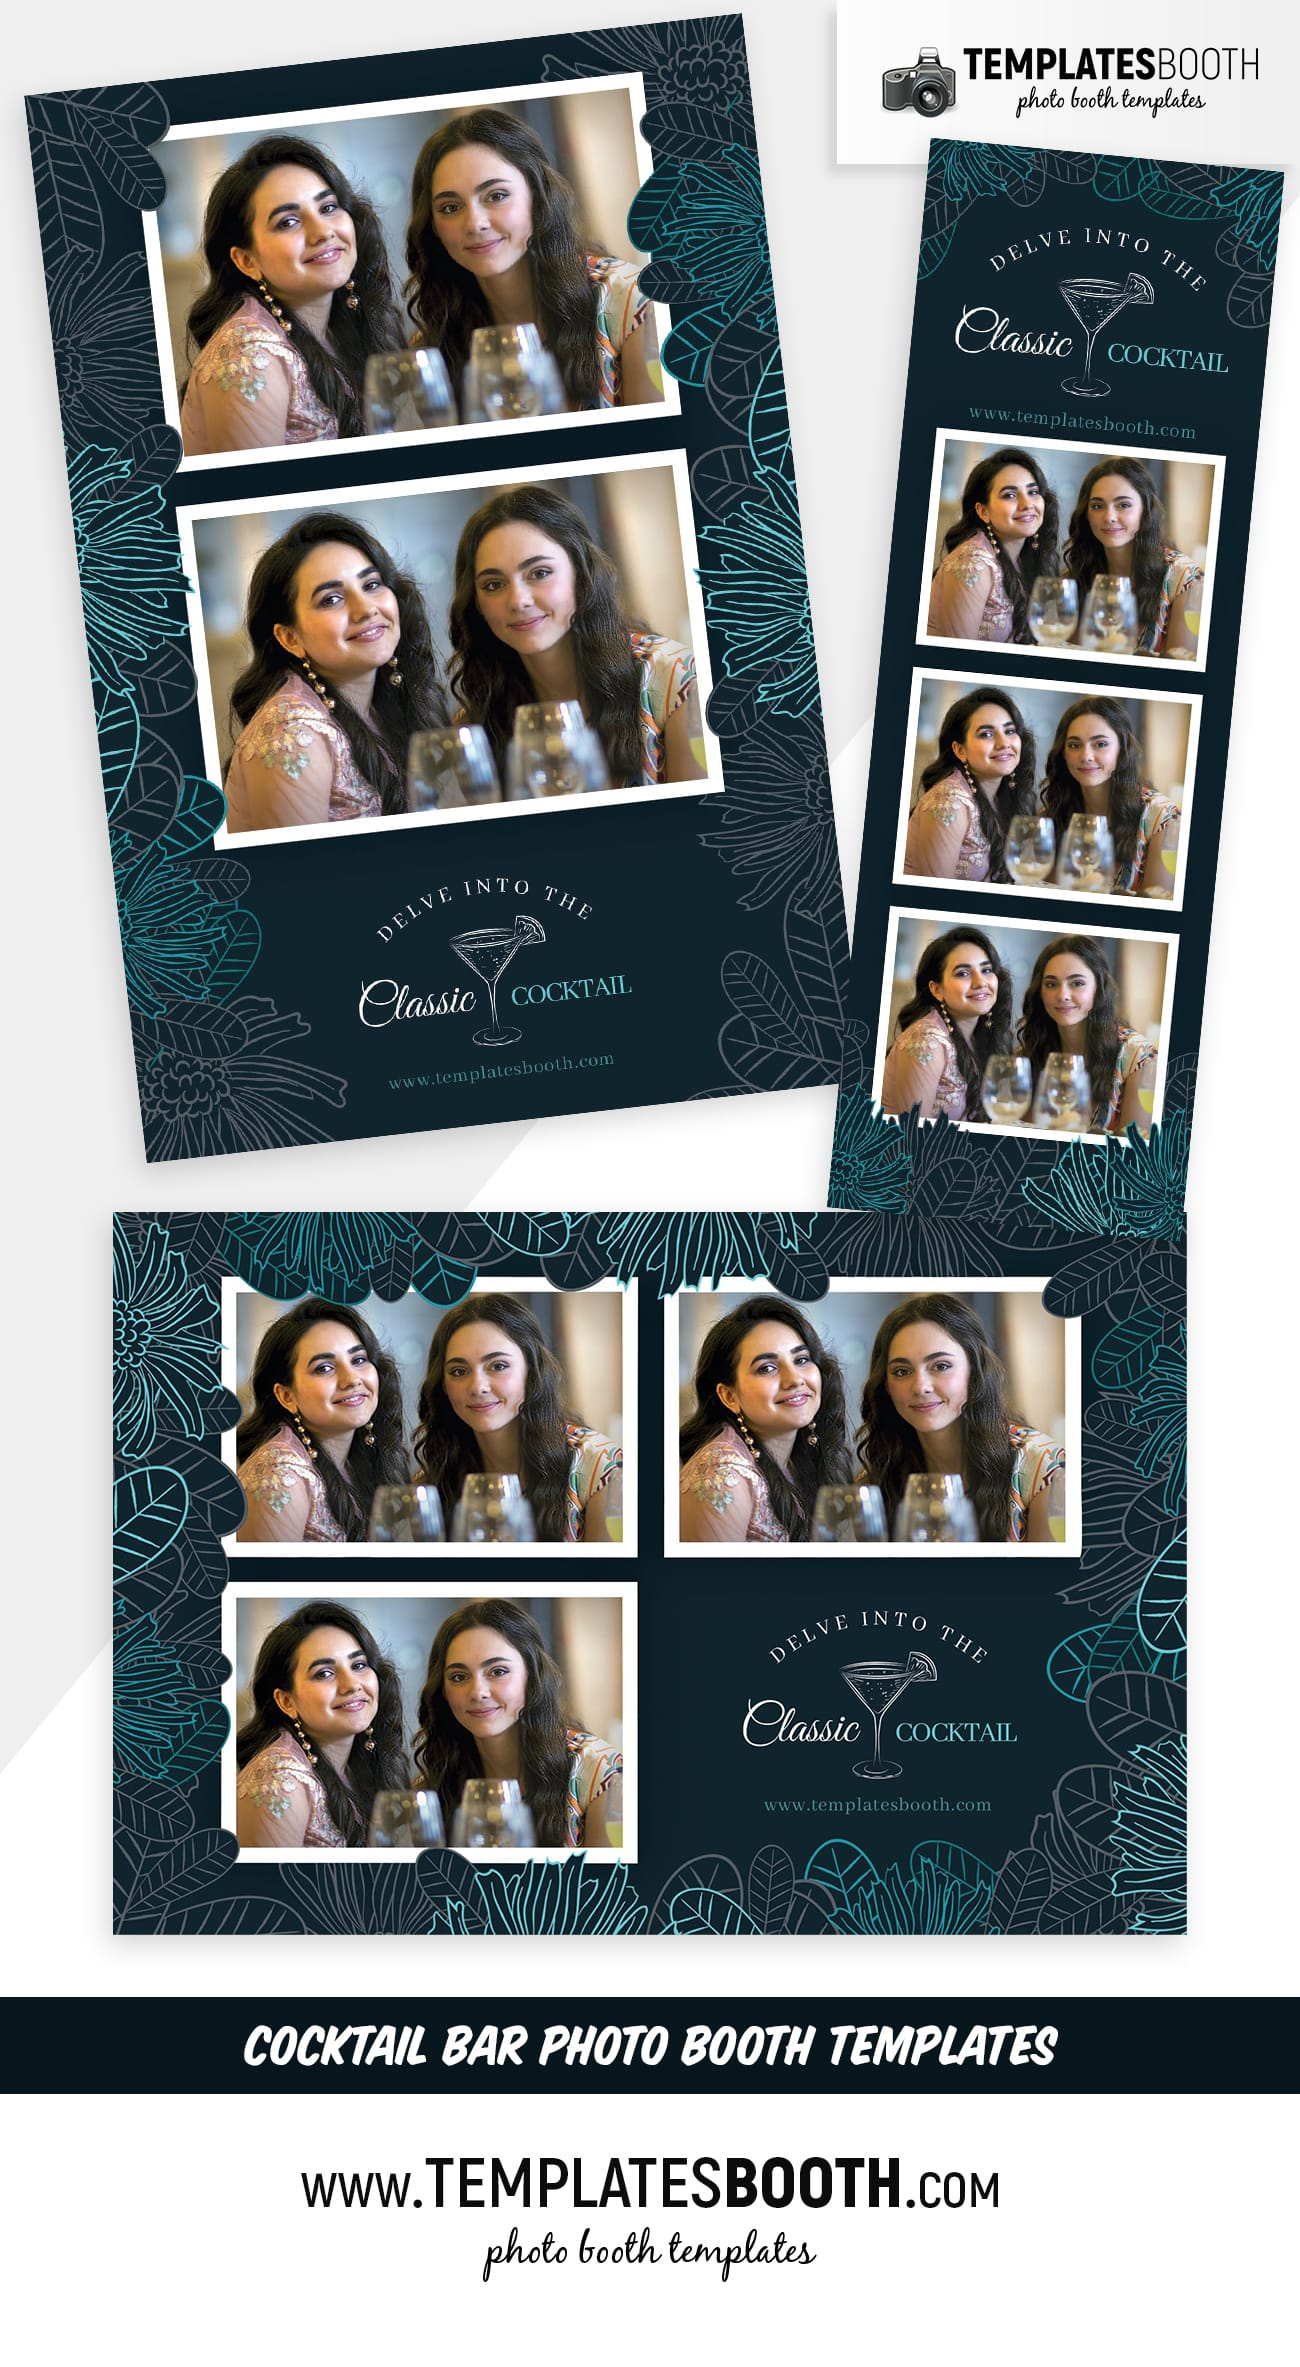 Cocktail Bar Photo Booth Template (full preview)